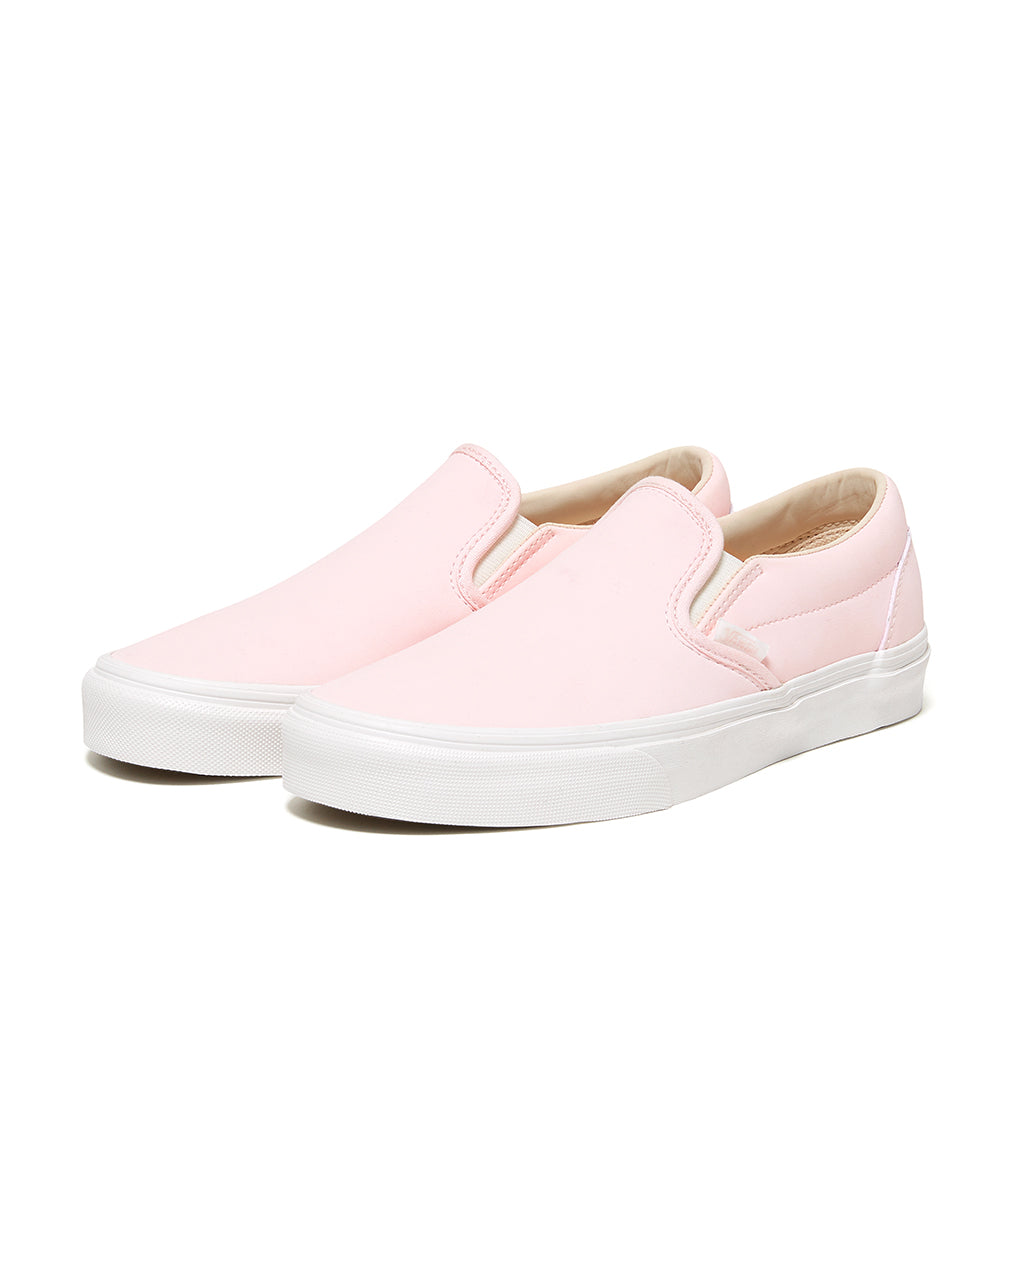 c0164b8c2ffb Classic Slip-On - Heavenly Pink by vans - shoes - ban.do